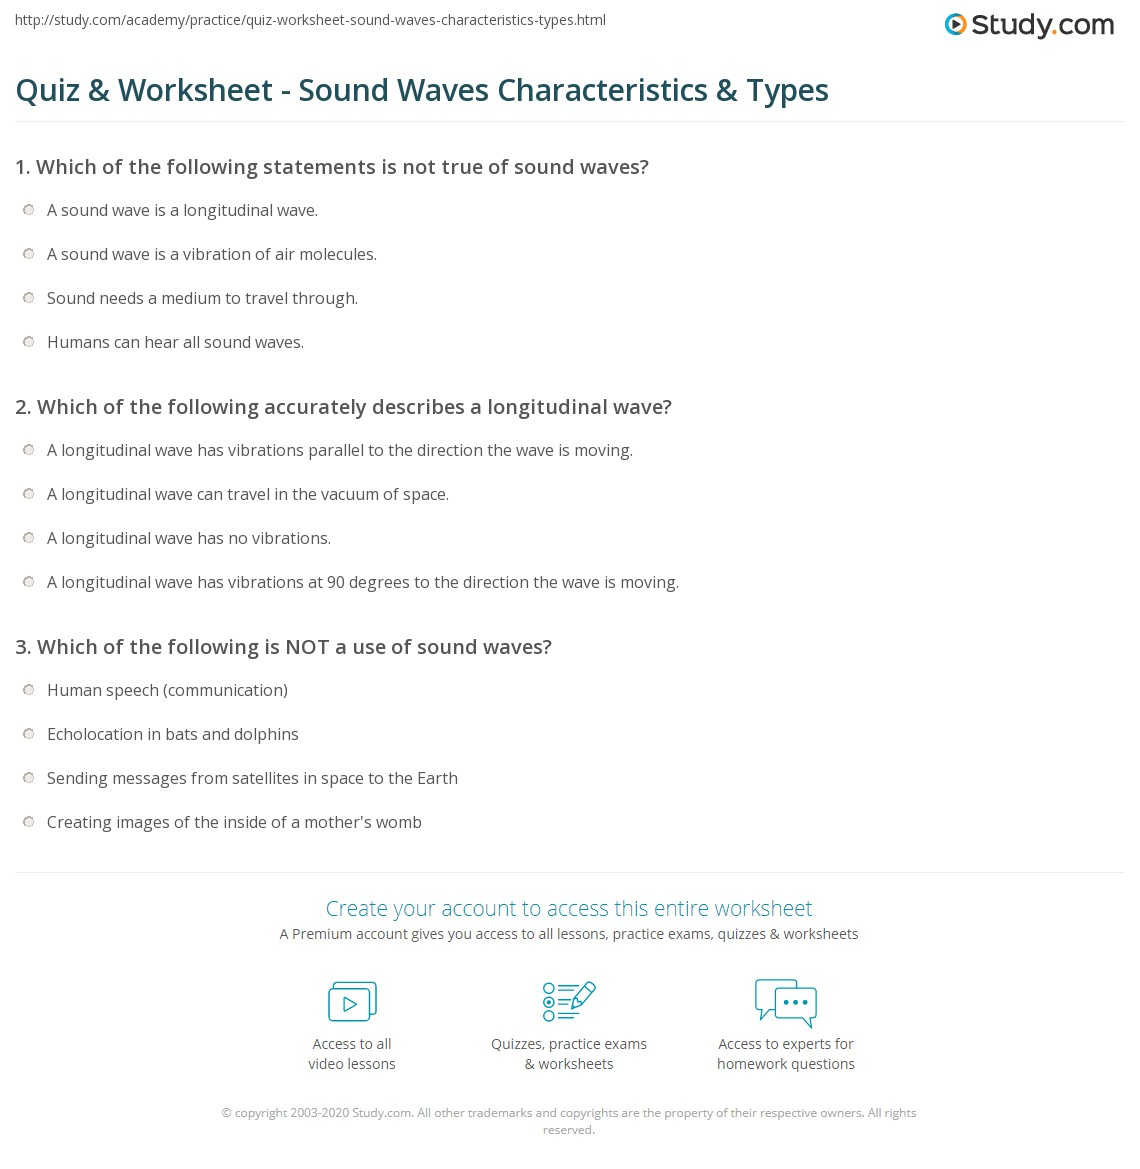 quiz worksheet sound waves characteristics types. Black Bedroom Furniture Sets. Home Design Ideas